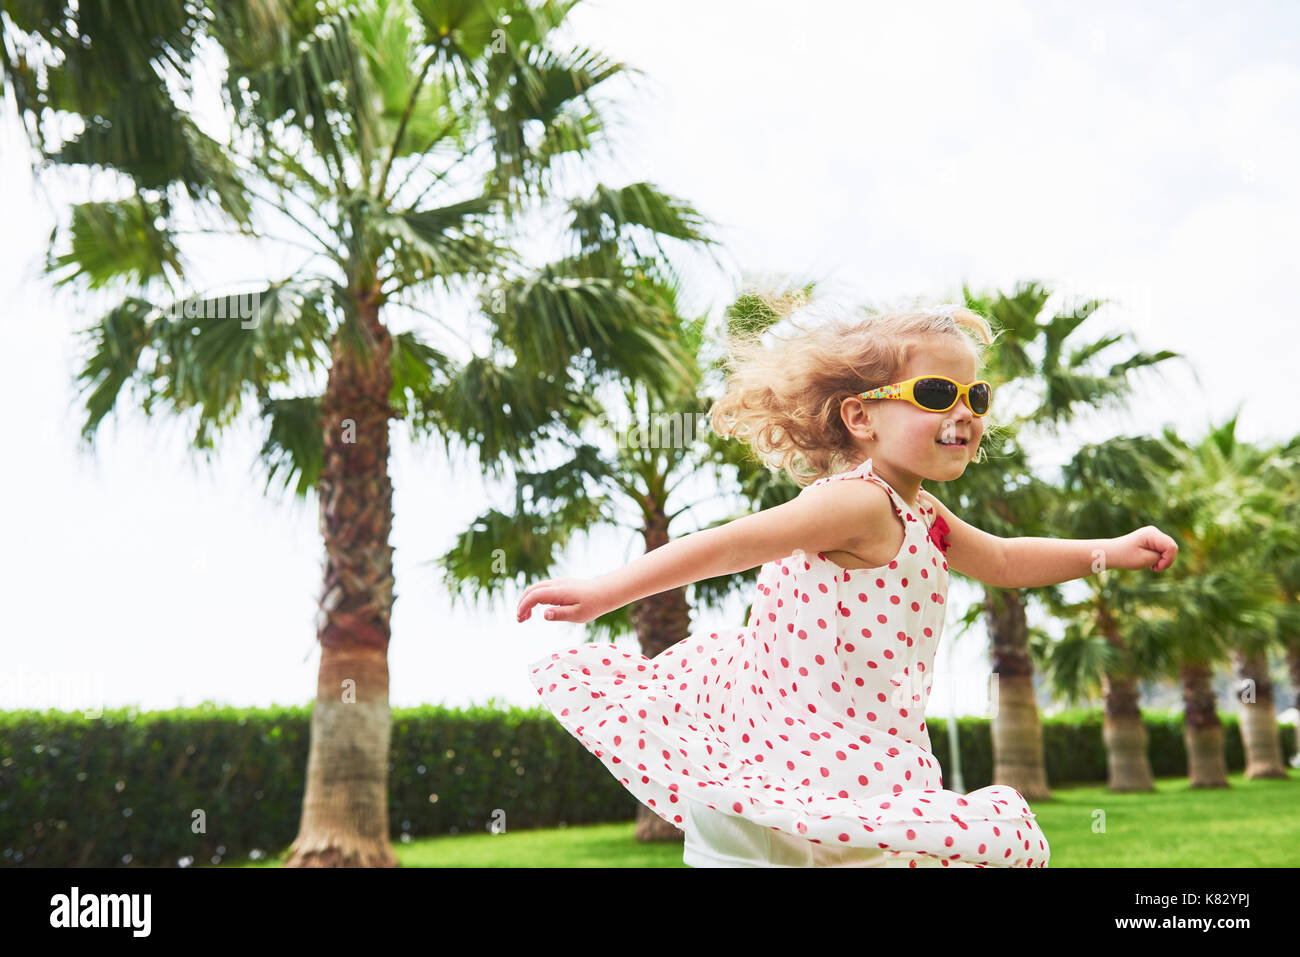 baby girl in a park near trees. - Stock Image